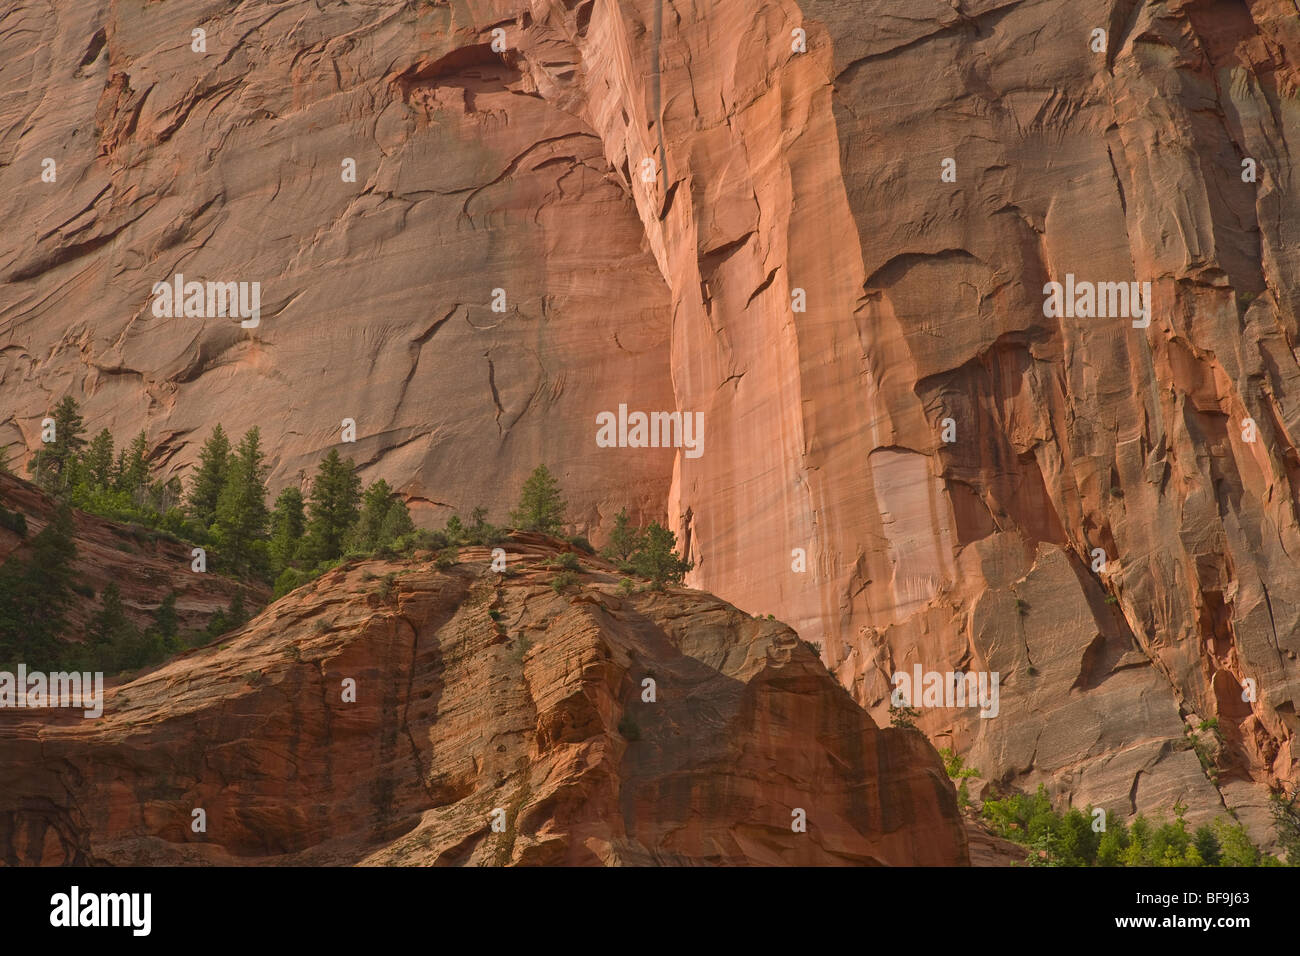 Walls of Navajo Sandstone rise above Middle Fork of Taylor Creek Trail, in Kolob Canyons area of Zion National Park, - Stock Image